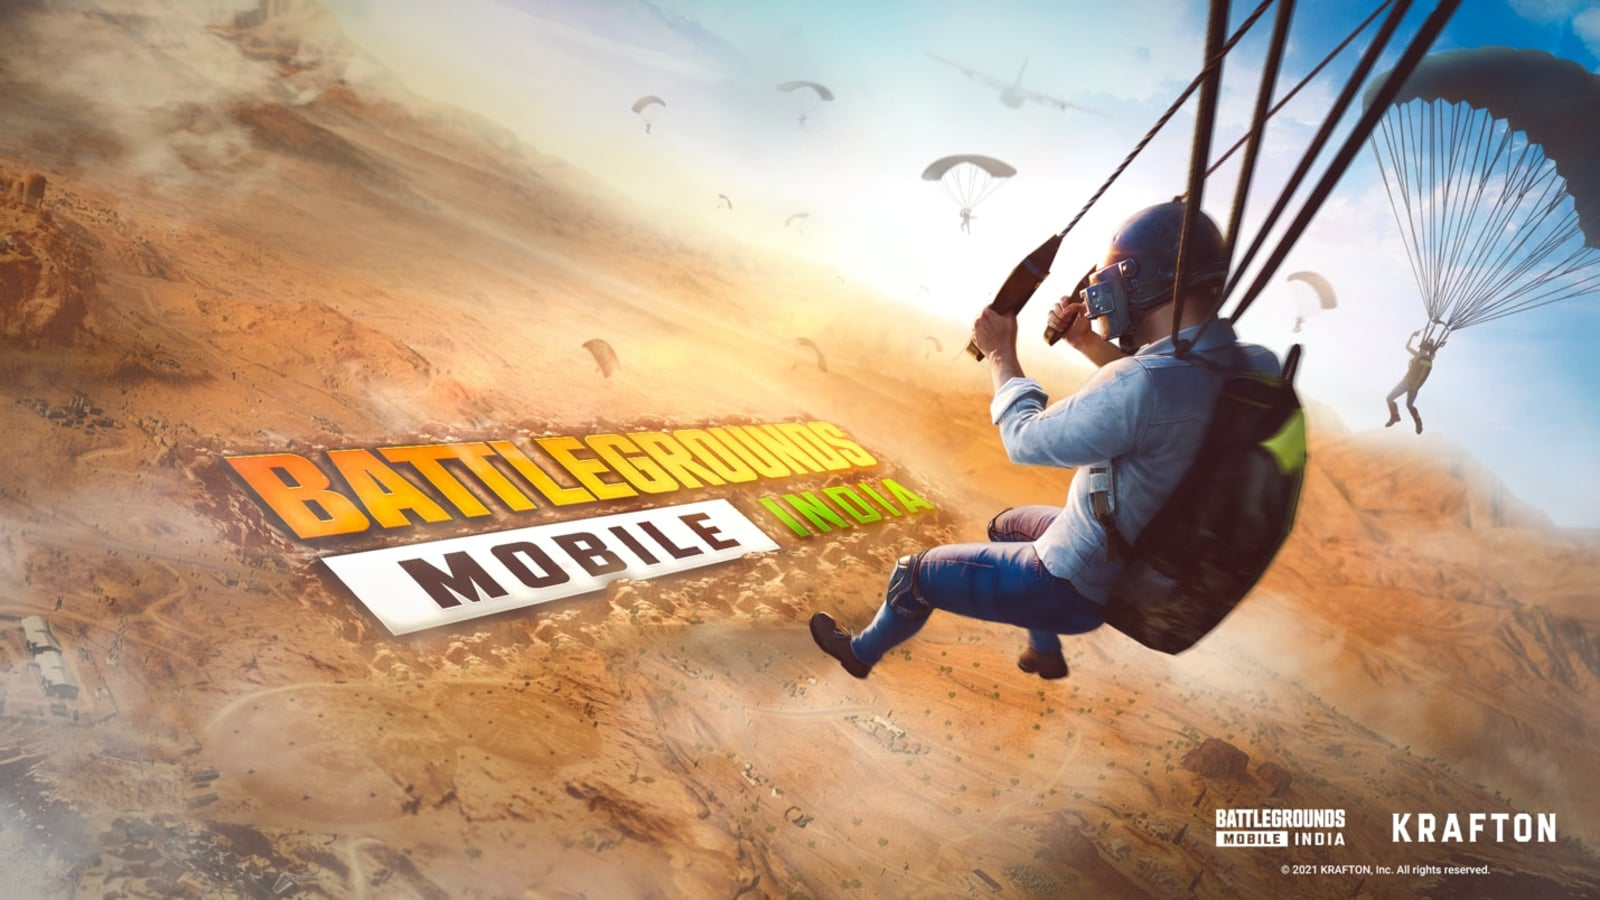 Battlegrounds Mobile India is available for download for pre-registered beta testers